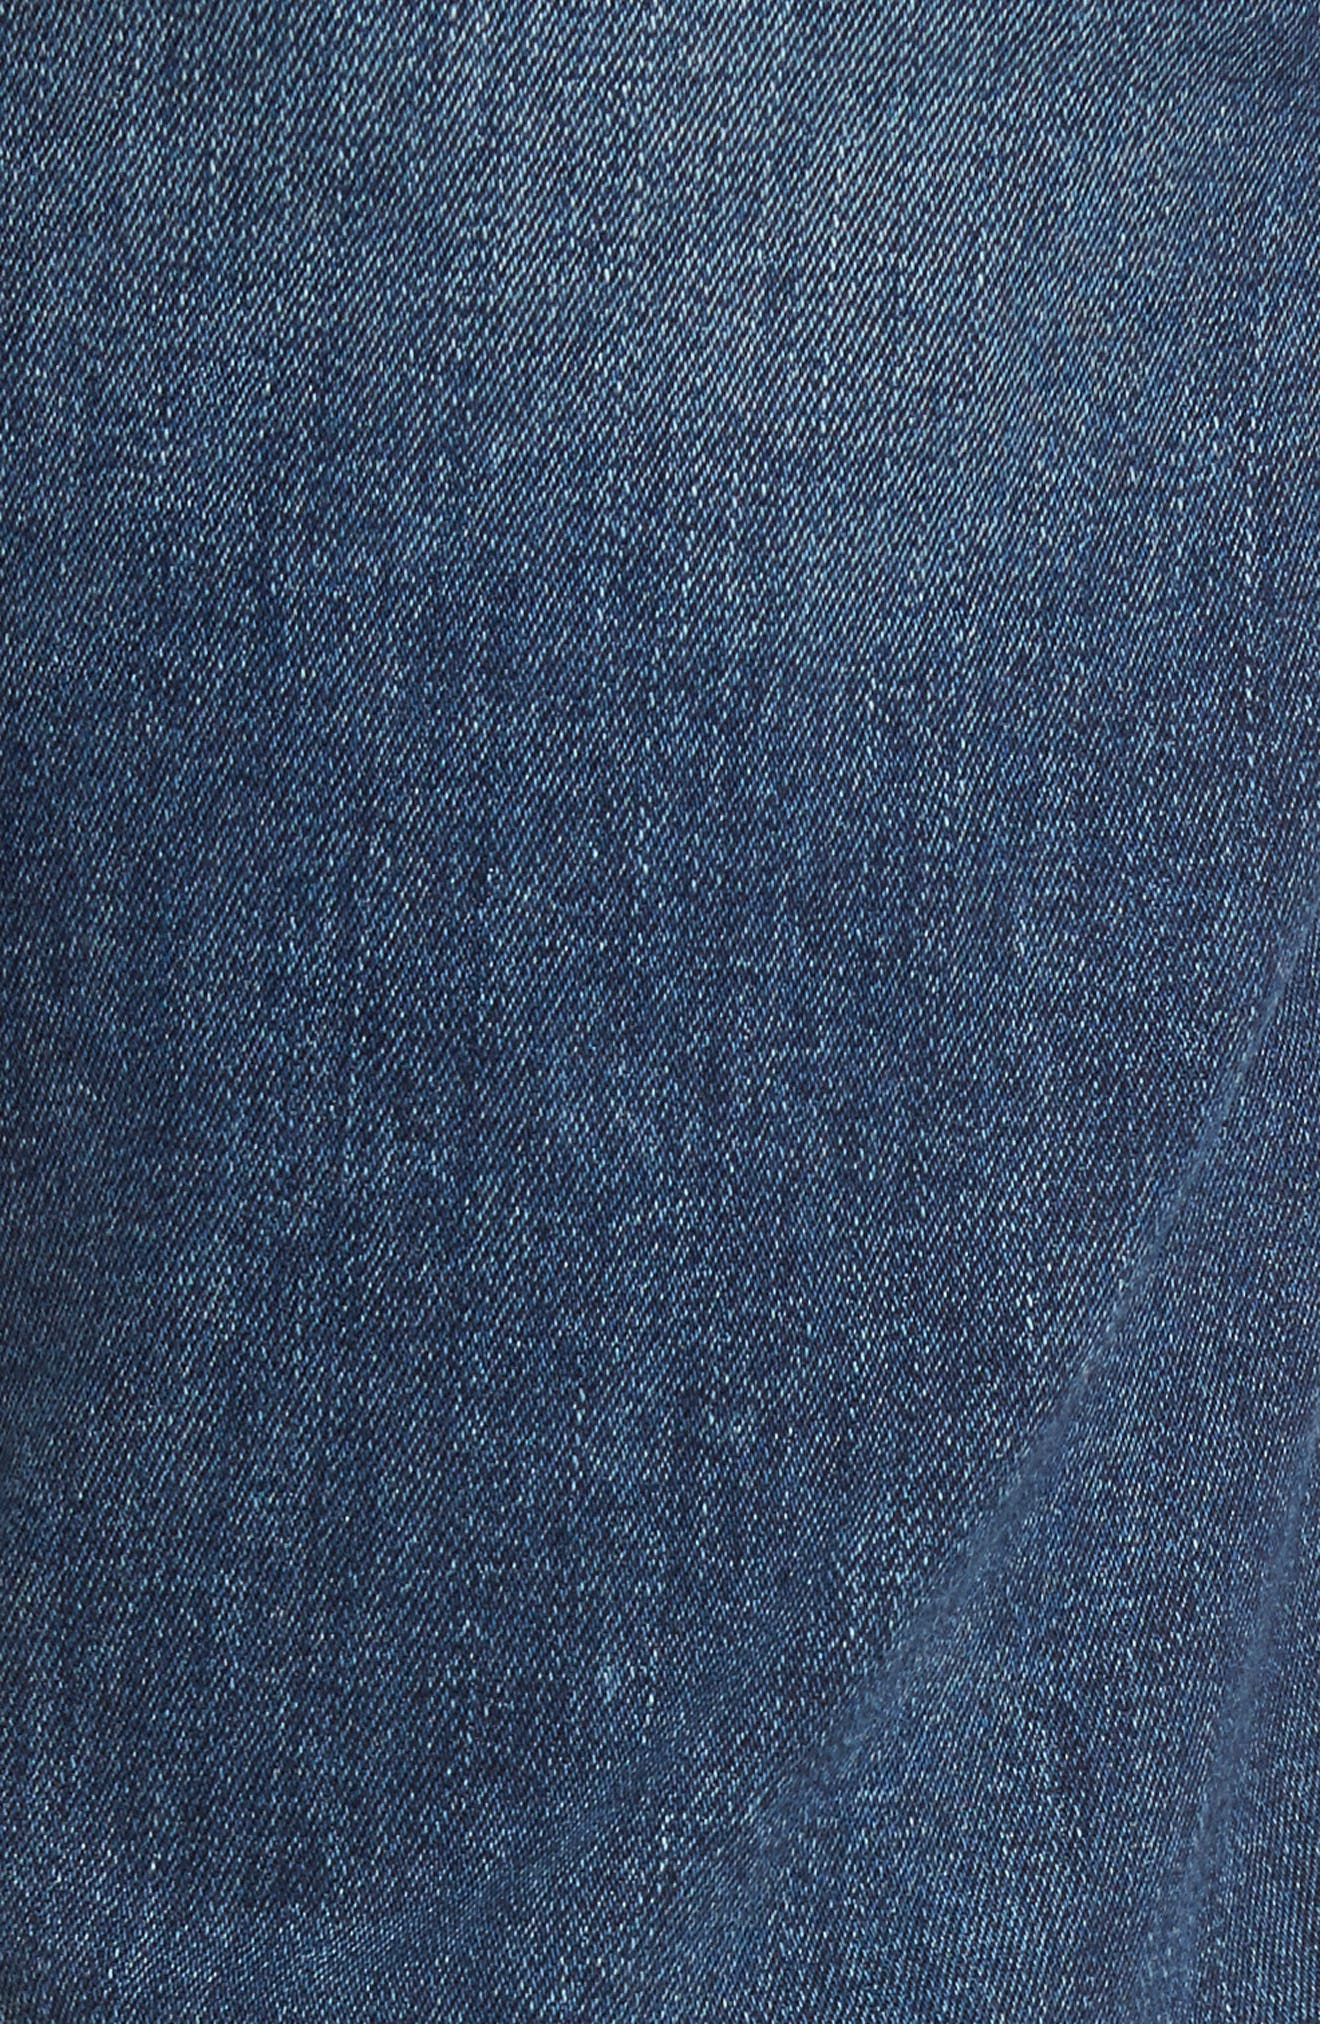 Russell Slim Straight Fit Jeans,                             Alternate thumbnail 5, color,                             Twine